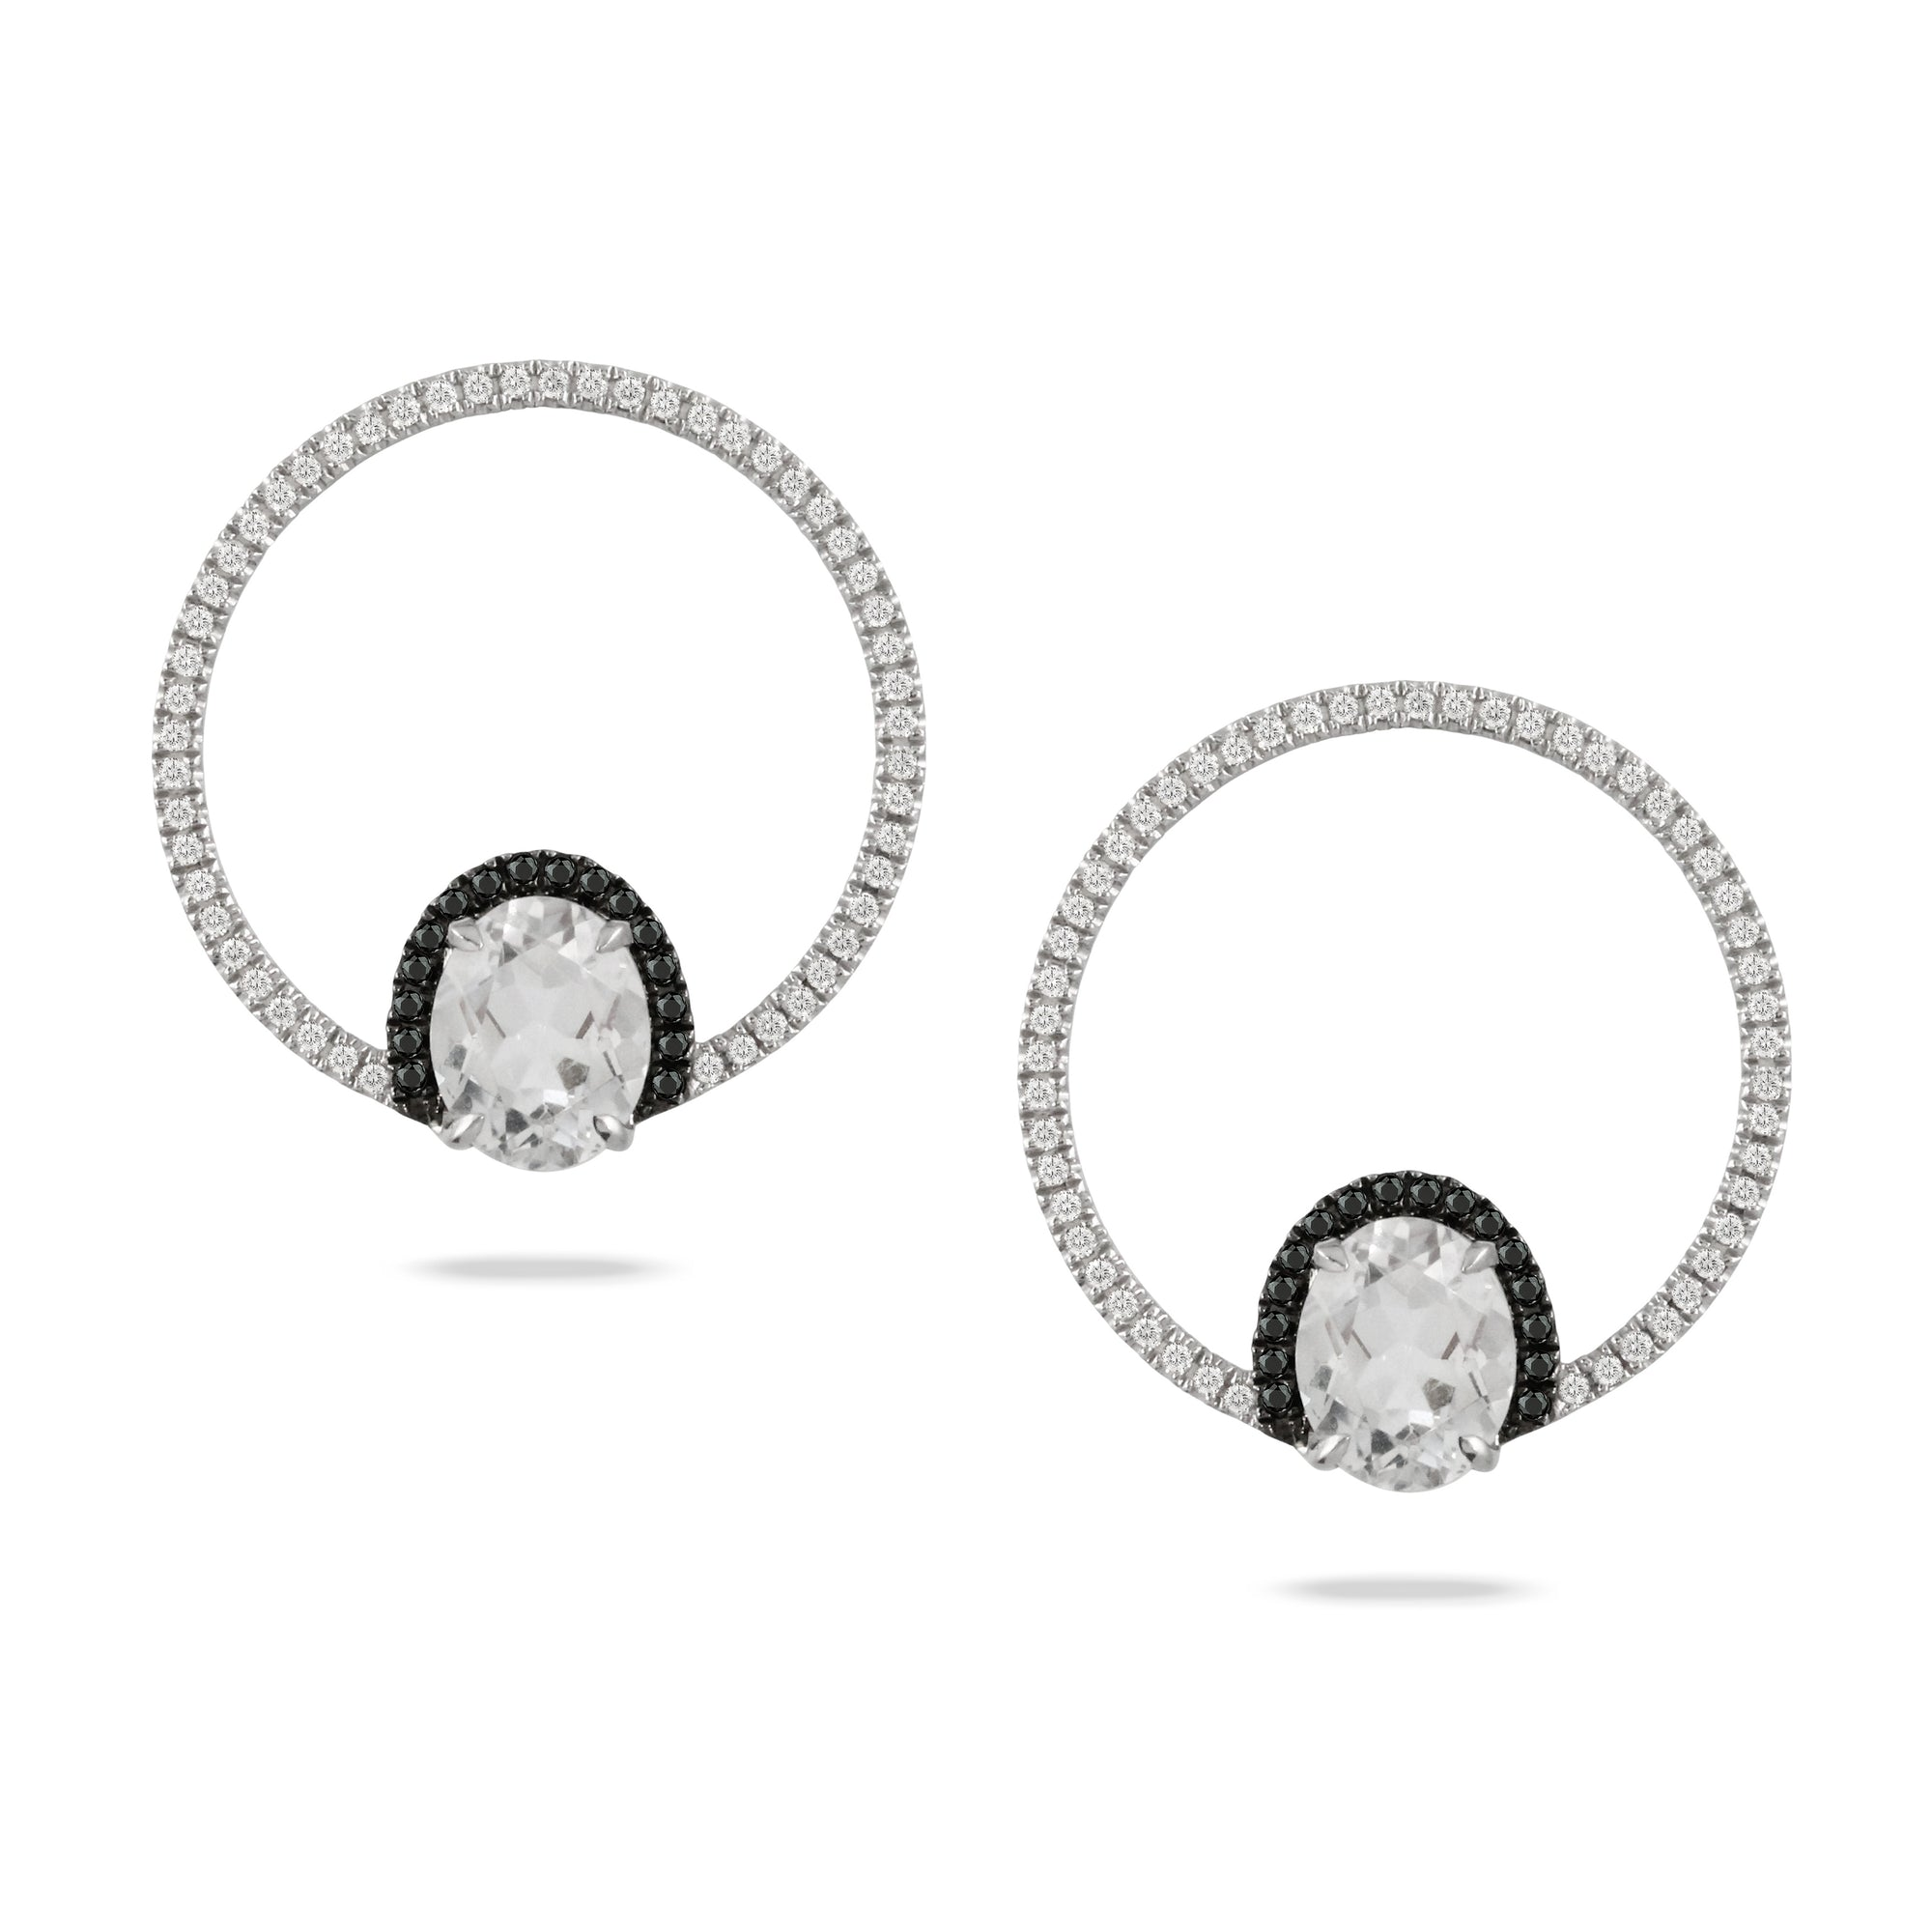 White Topaz and Diamond Mod Earrings by Doves - Talisman Collection Fine Jewelers